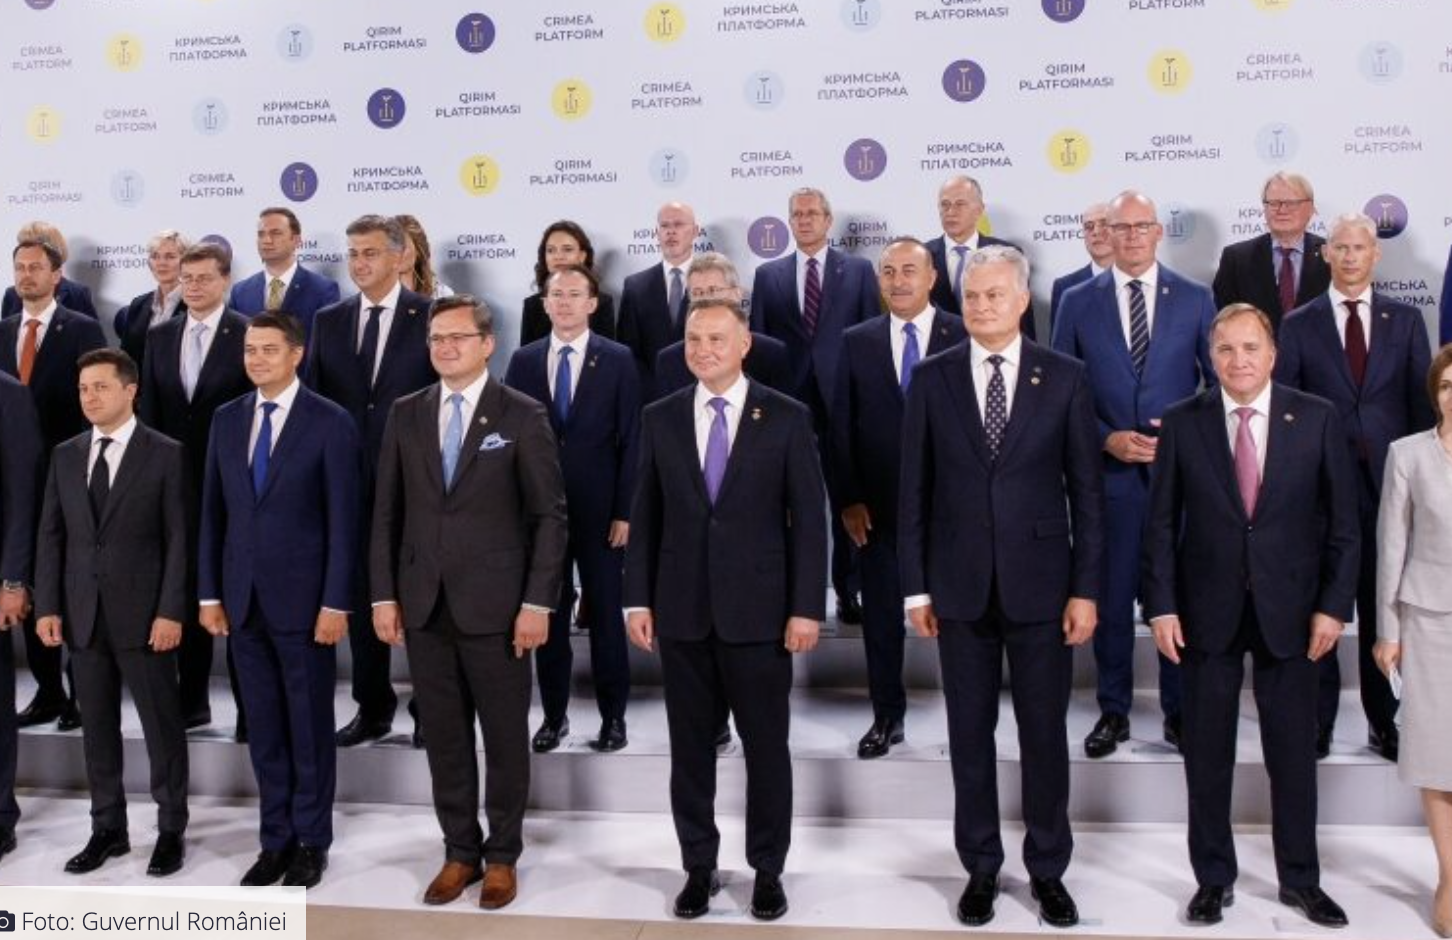 Romania: Reactions to Hungarian President's Statements at Kiev Summit